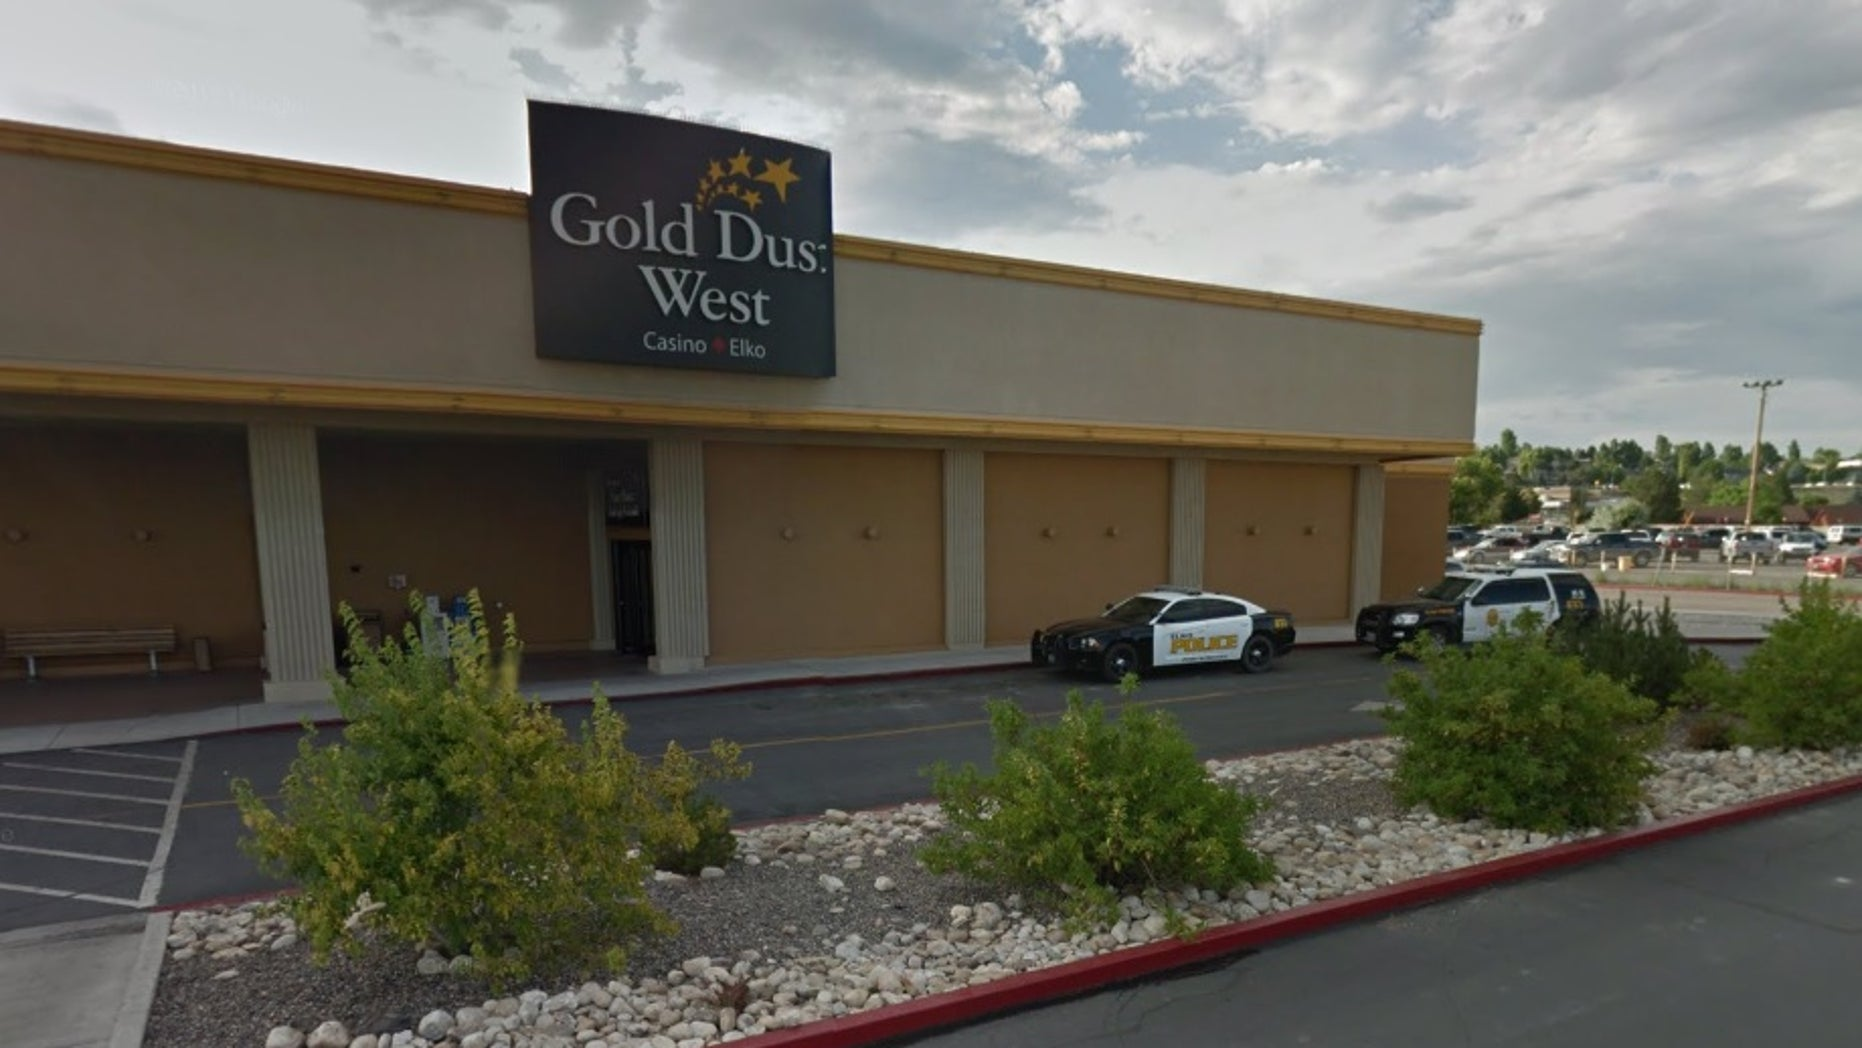 The Gold Dust West casino in Elko, where Aguirre cashed in.